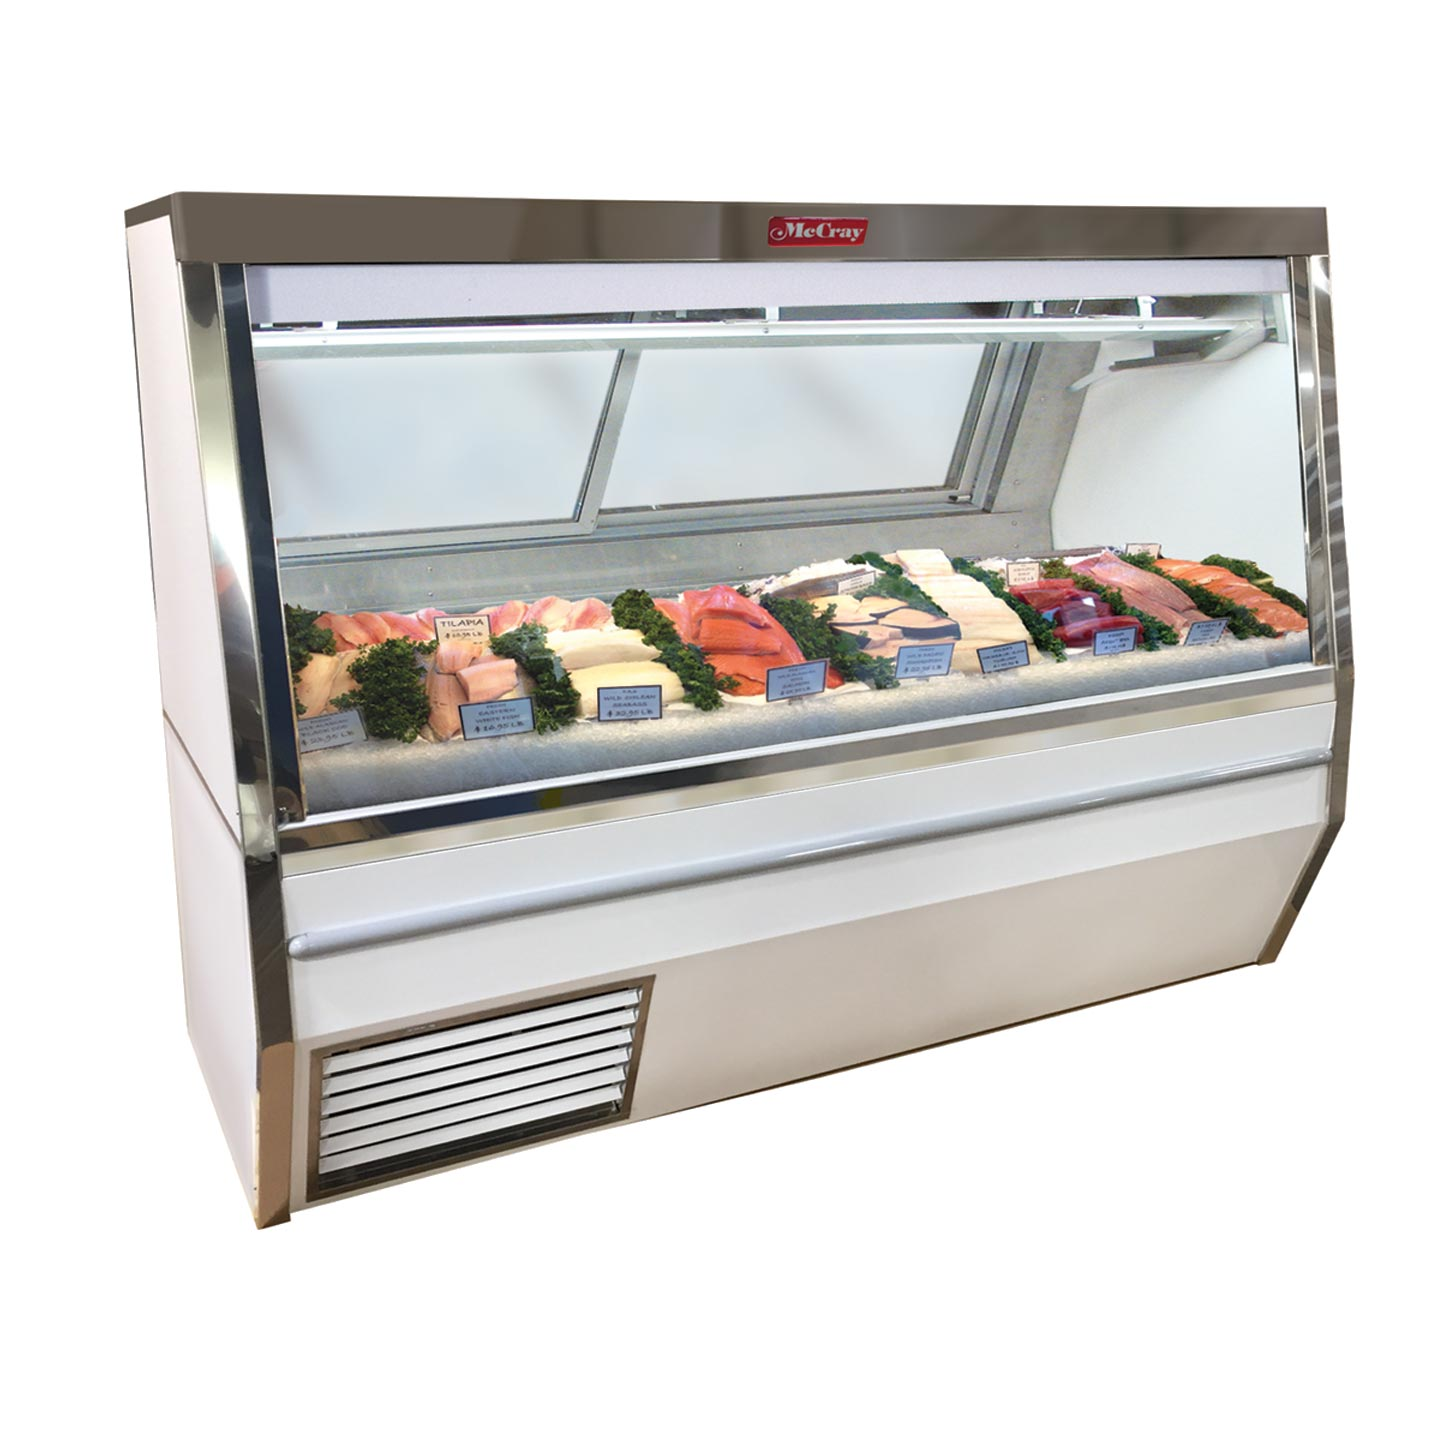 Howard-McCray SC-CFS34N-10-LED display case, deli seafood / poultry